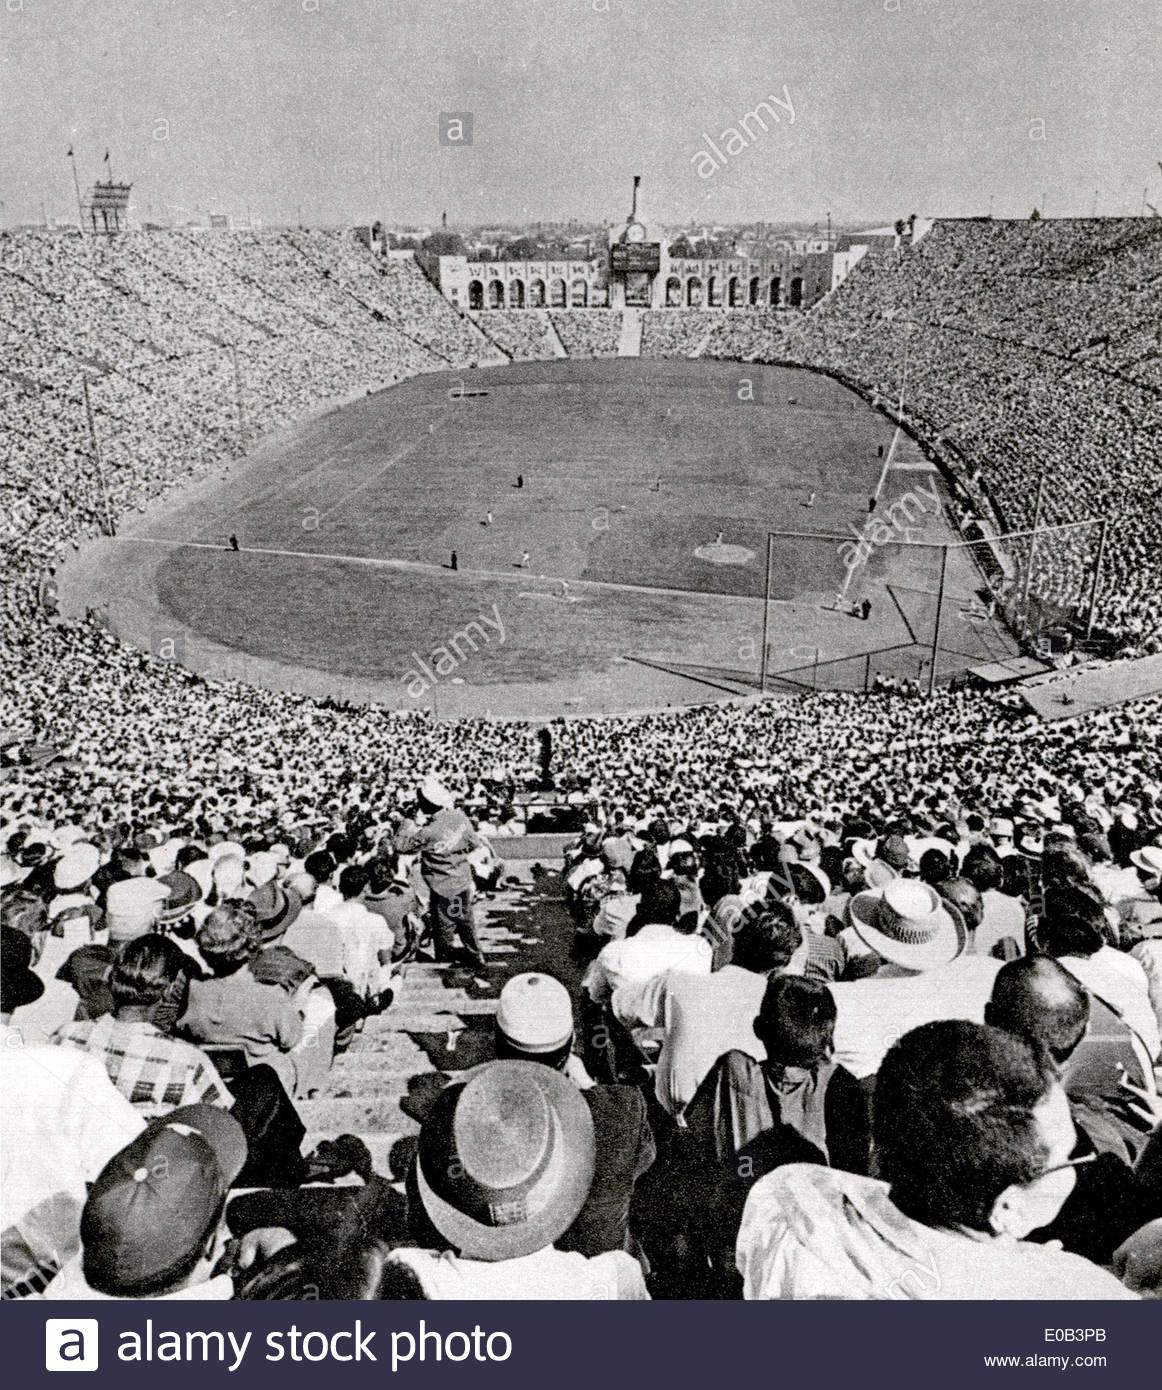 American stadium full of spectators  in early 1930's - Stock Image